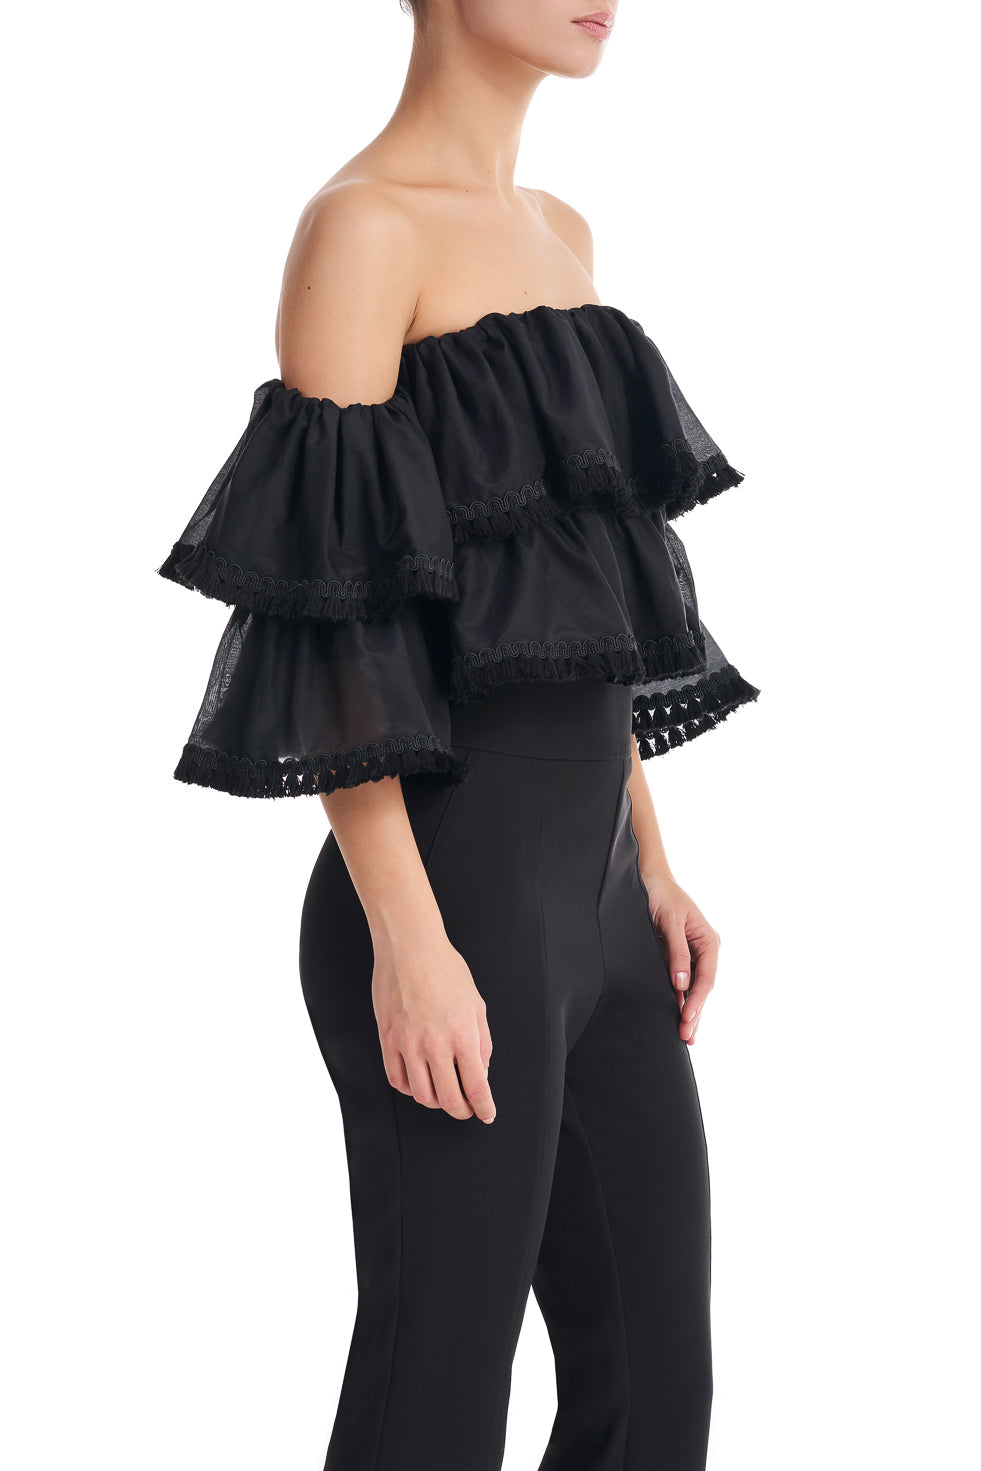 Jane Black Frill Fringe Bardot Top